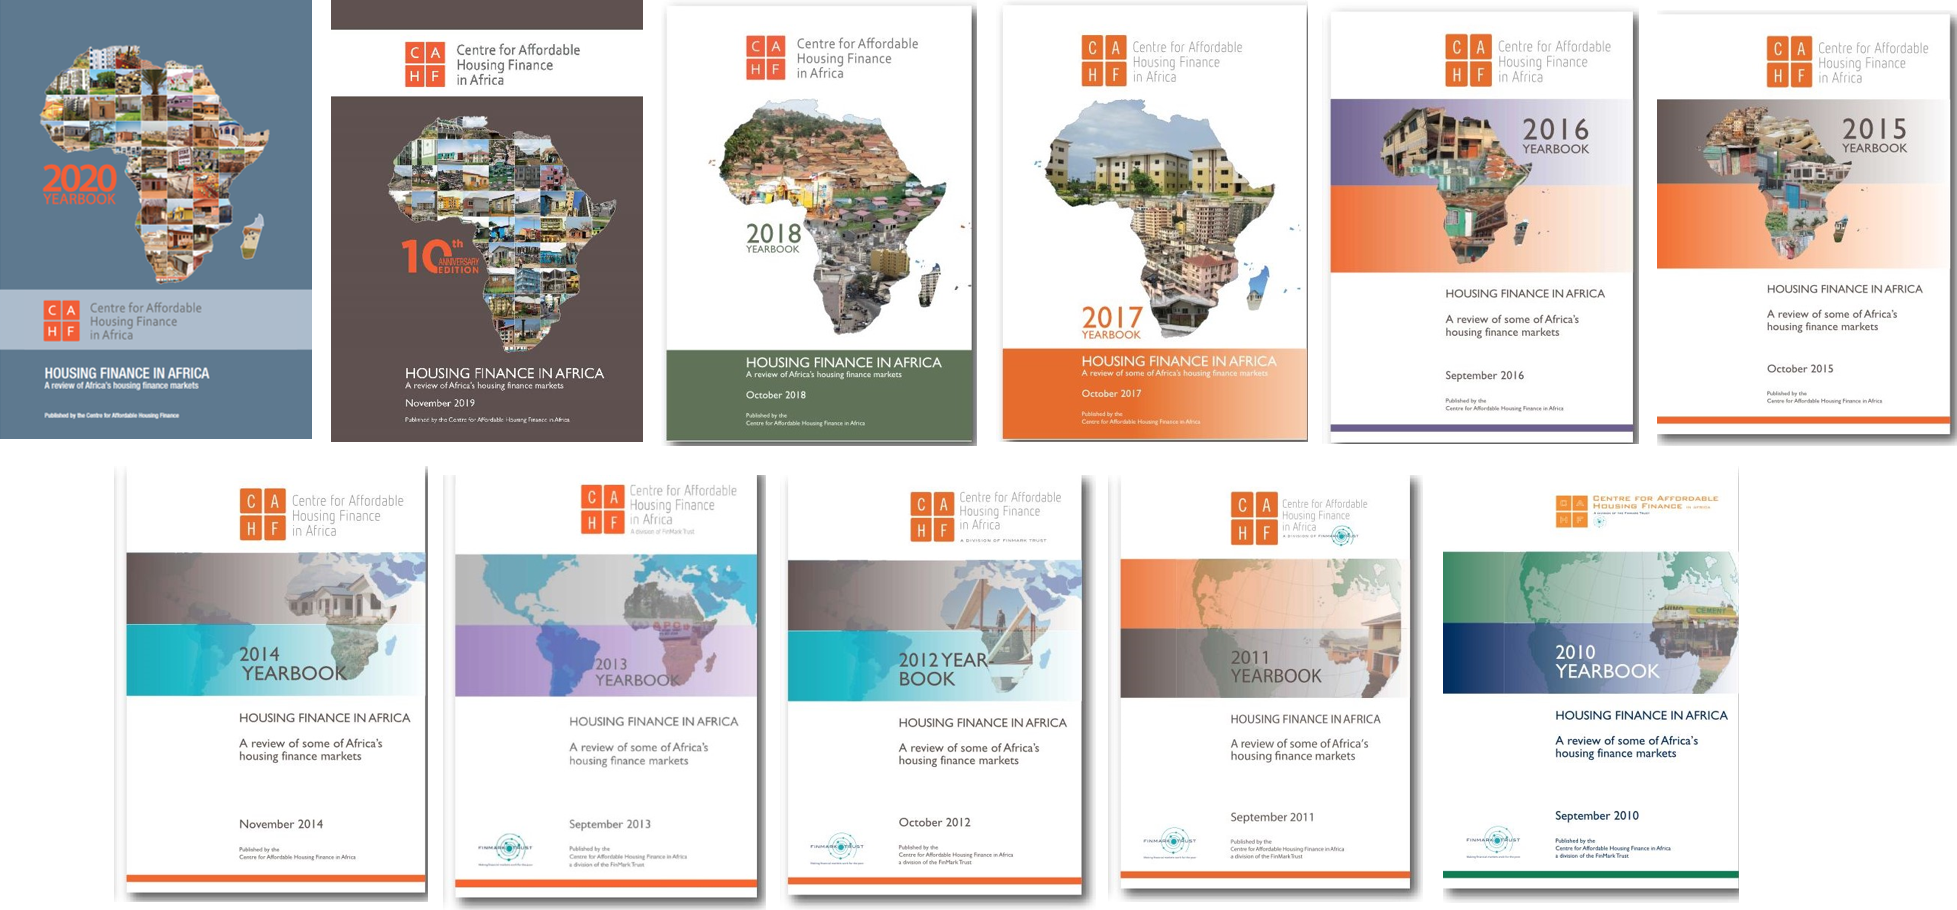 https://housingfinanceafrica.org/projects/housing-finance-yearbook/